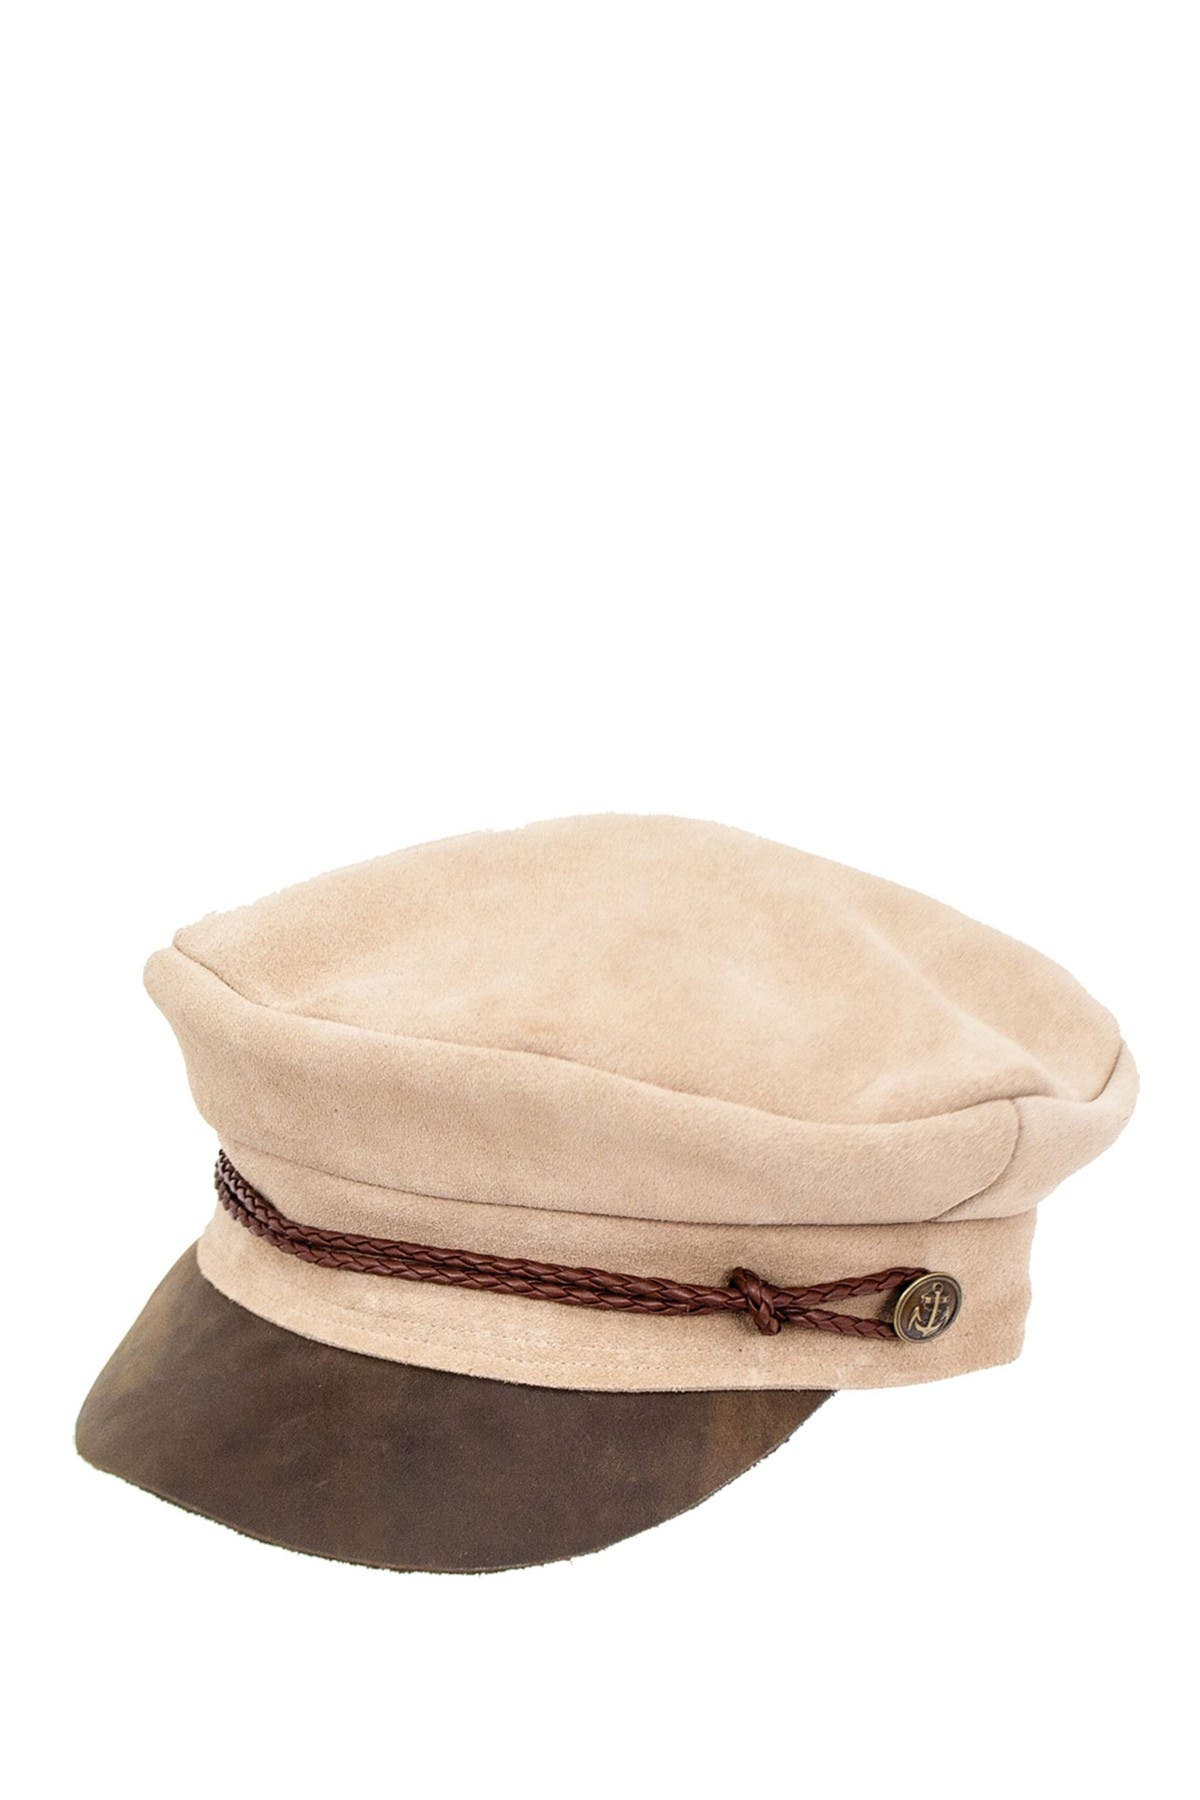 Image of Peter Grimm Headwear Lila Suede Newsboy Cap